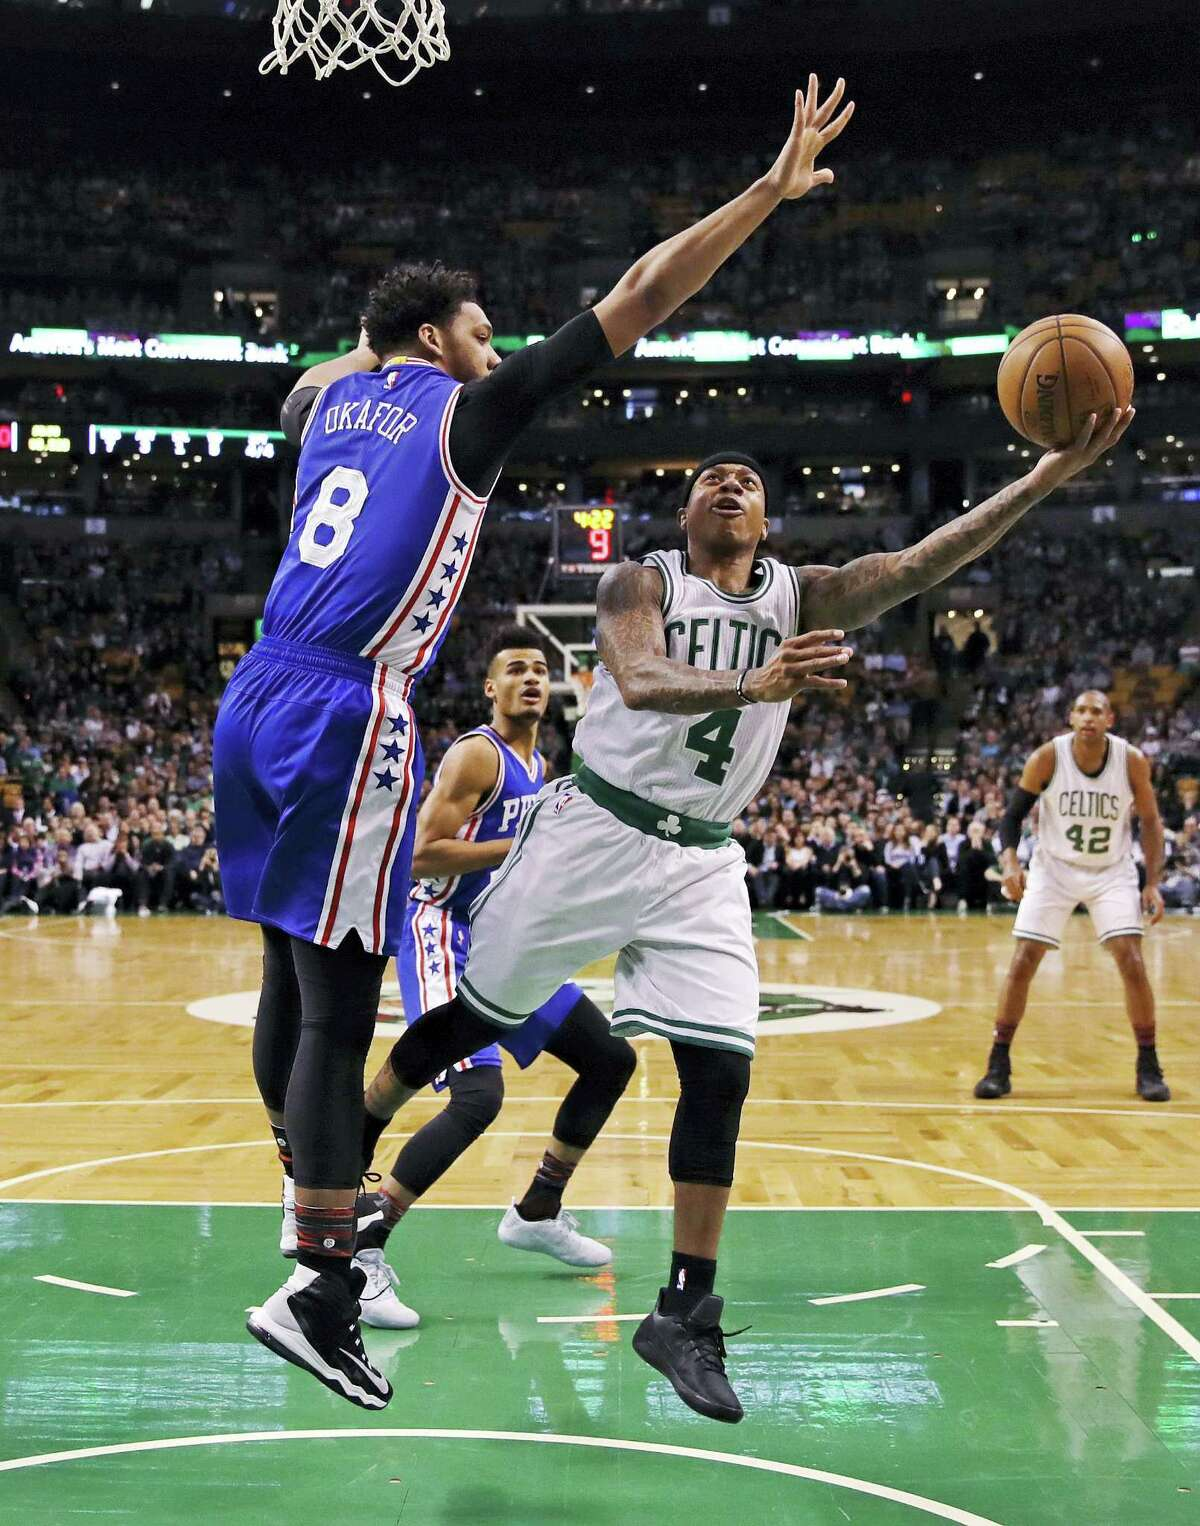 Boston Celtics guard Isaiah Thomas (4) is covered by Philadelphia 76ers center Jahlil Okafor (8) on a drive to the basket during the first quarter in Boston Wednesday.